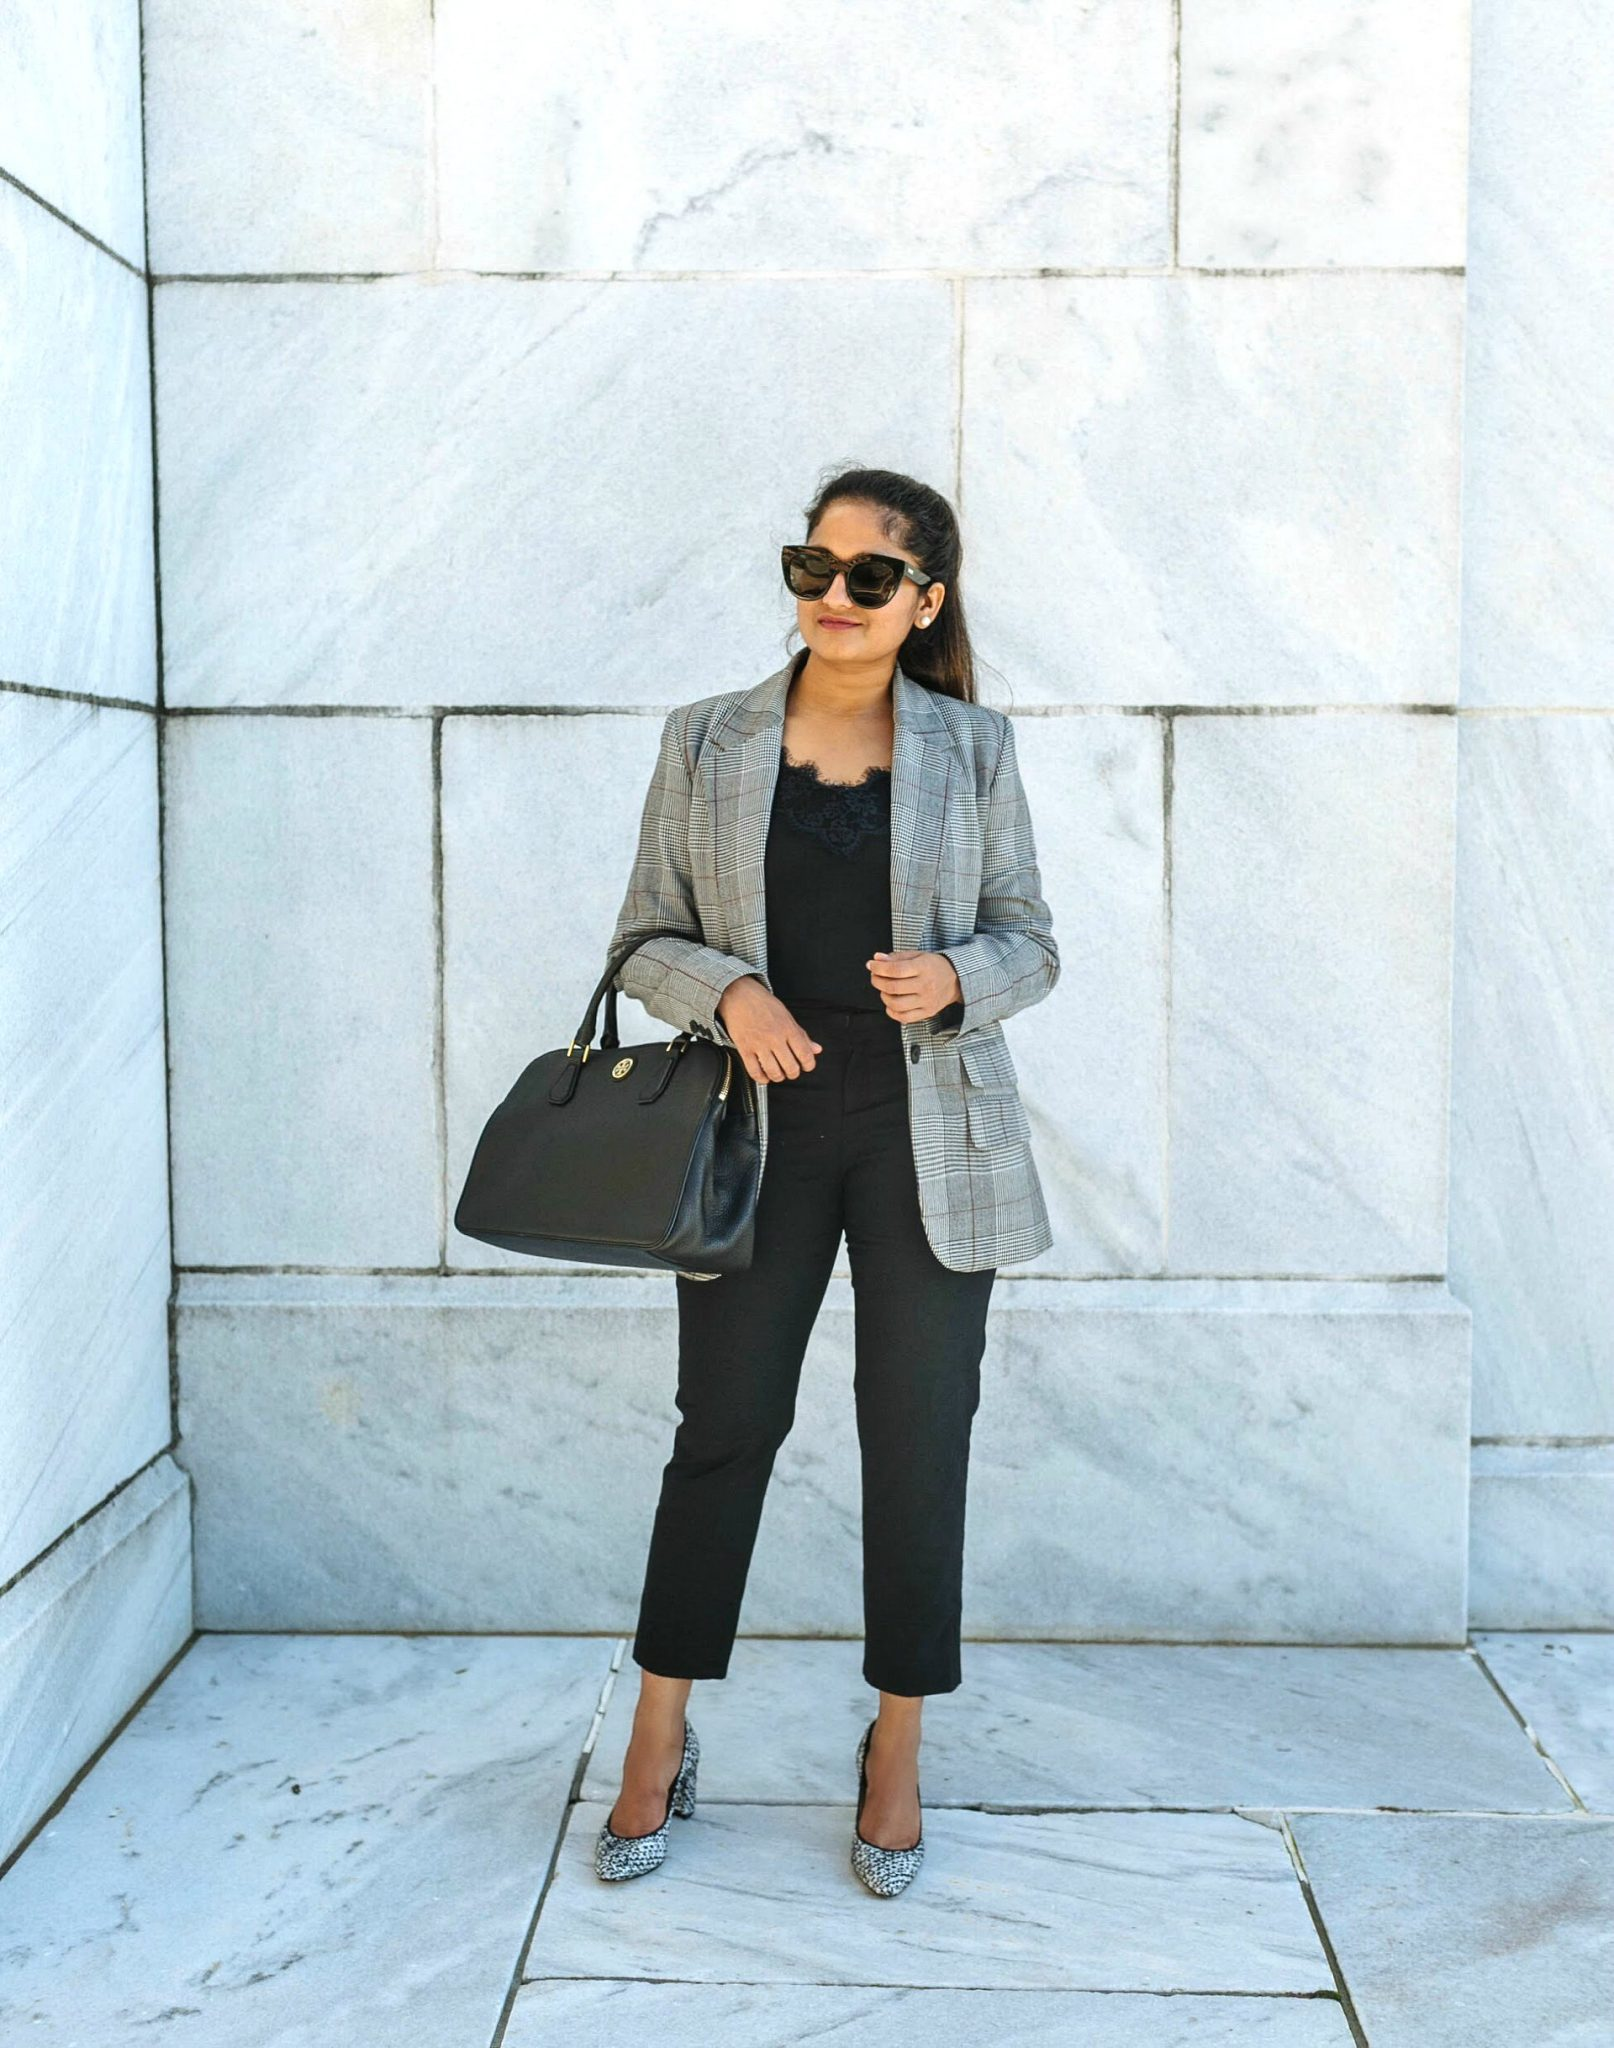 How to wear monochrome outfits to work | Colorful Fall Work Outfits featured by popular US modest fashion blogger, Dreaming Loud